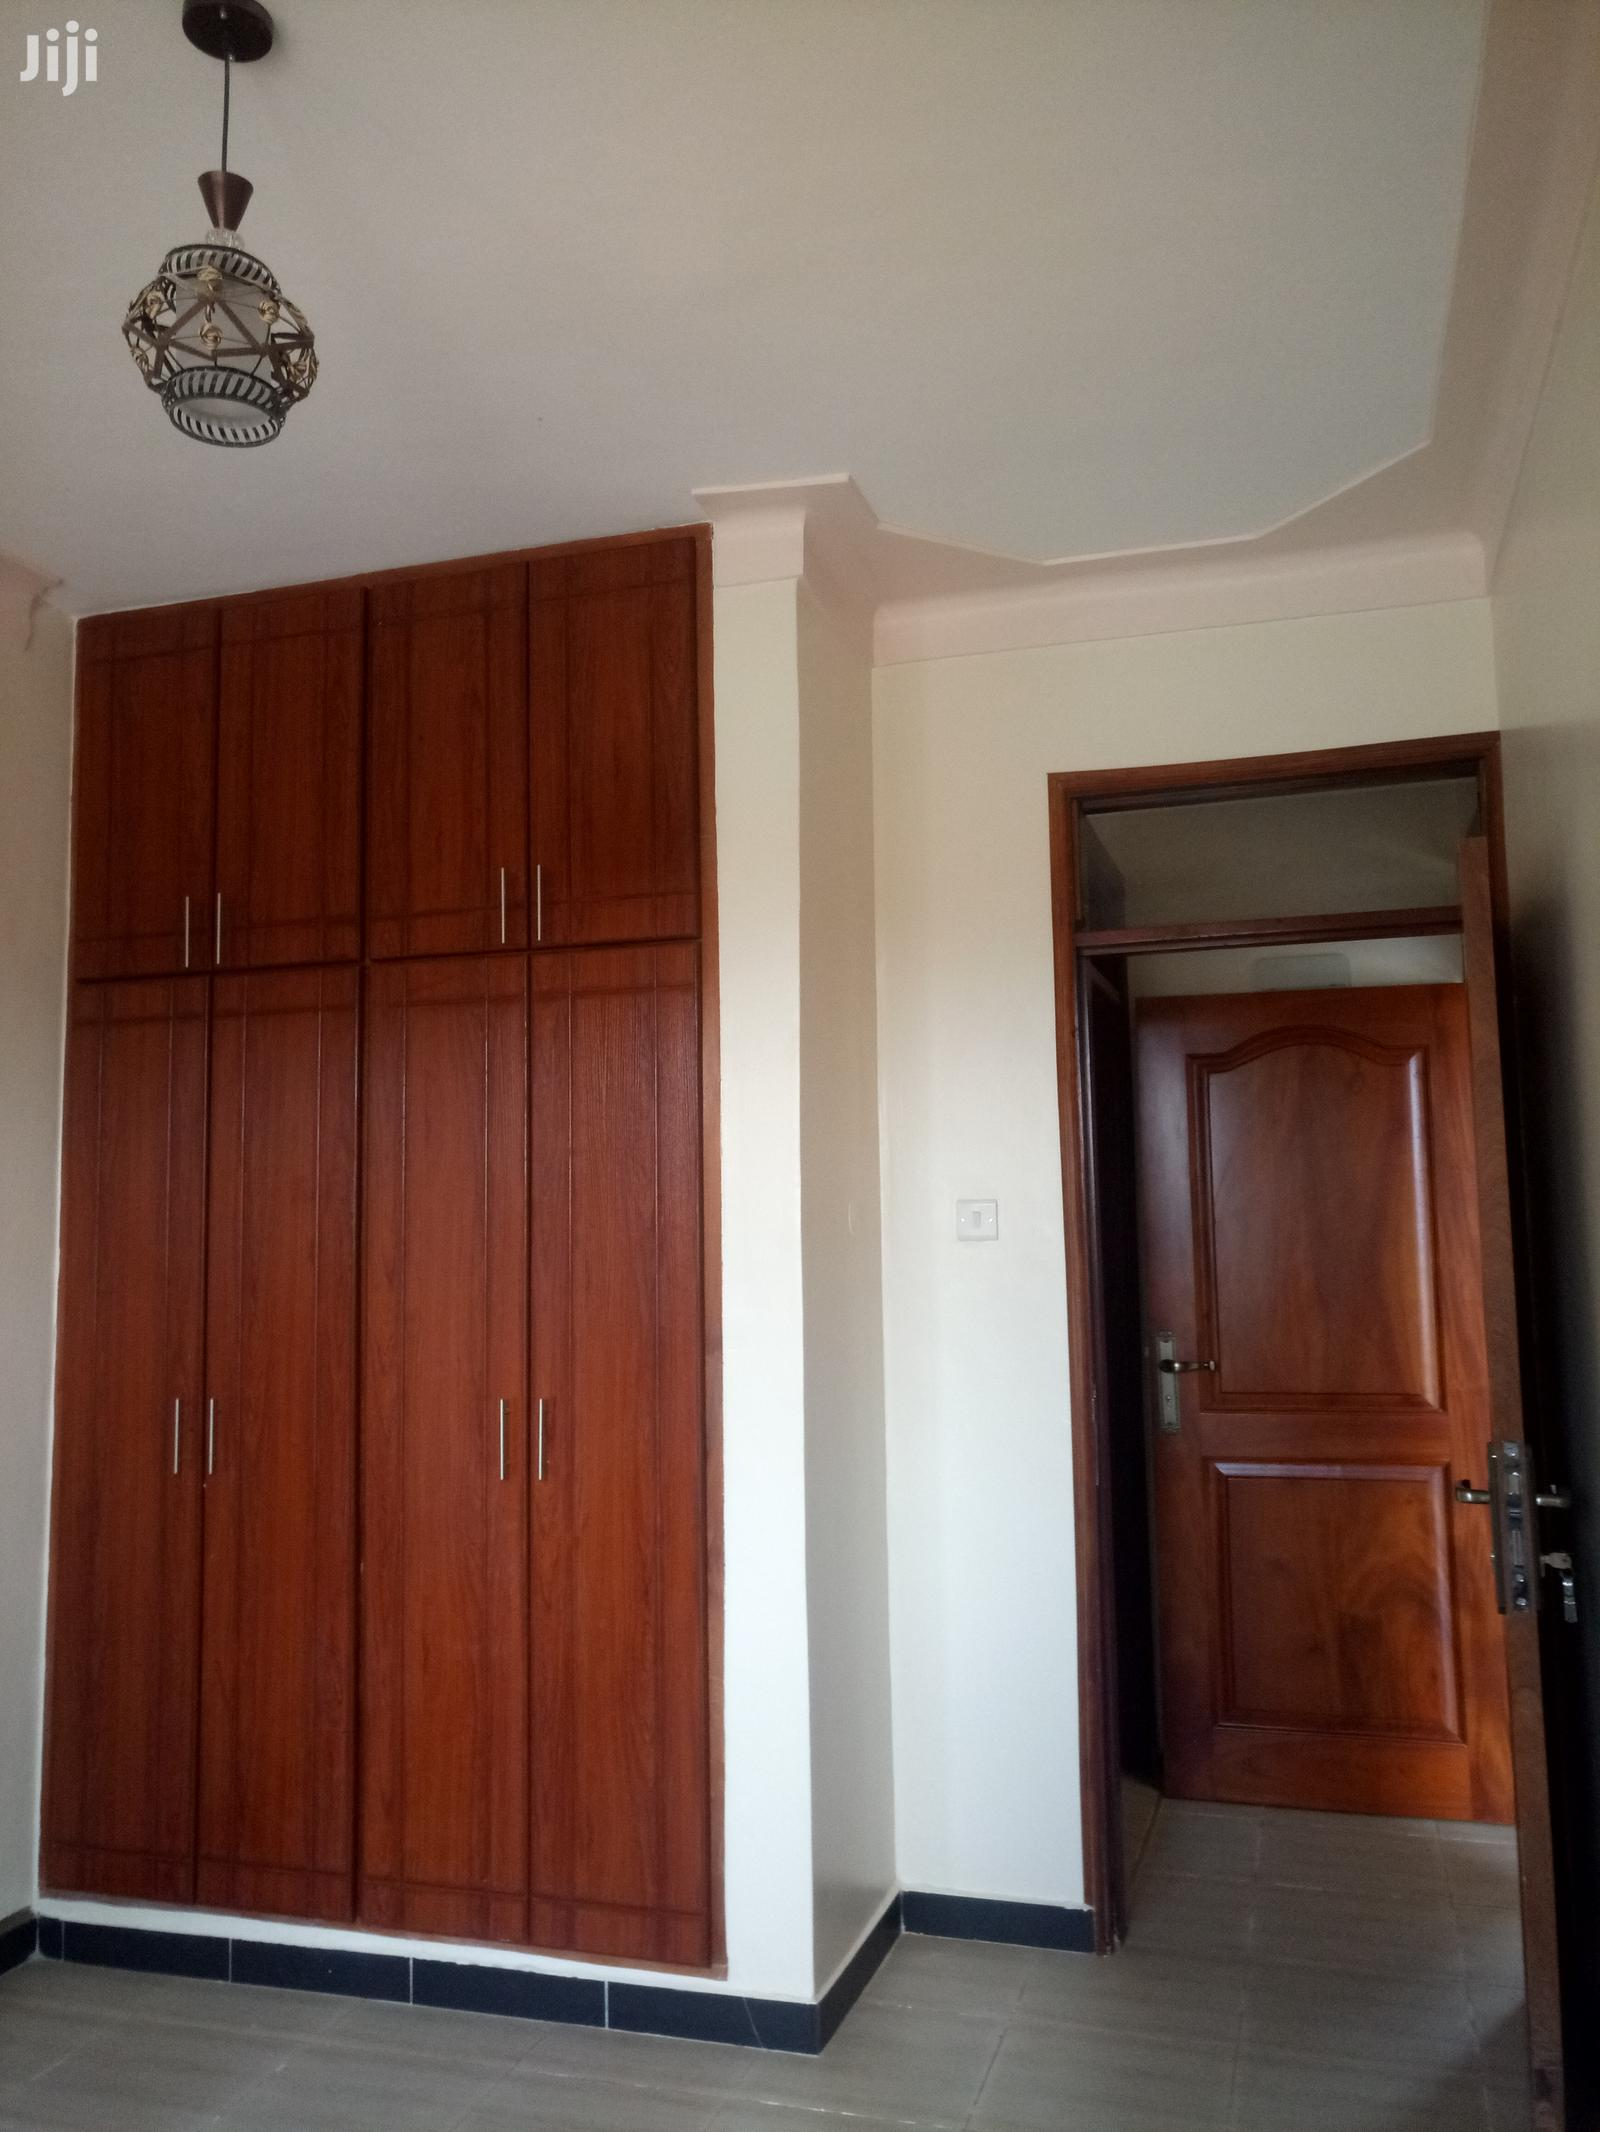 NAJJERA Executive Self Contained Double Room Apartmnt | Houses & Apartments For Rent for sale in Kampala, Central Region, Uganda